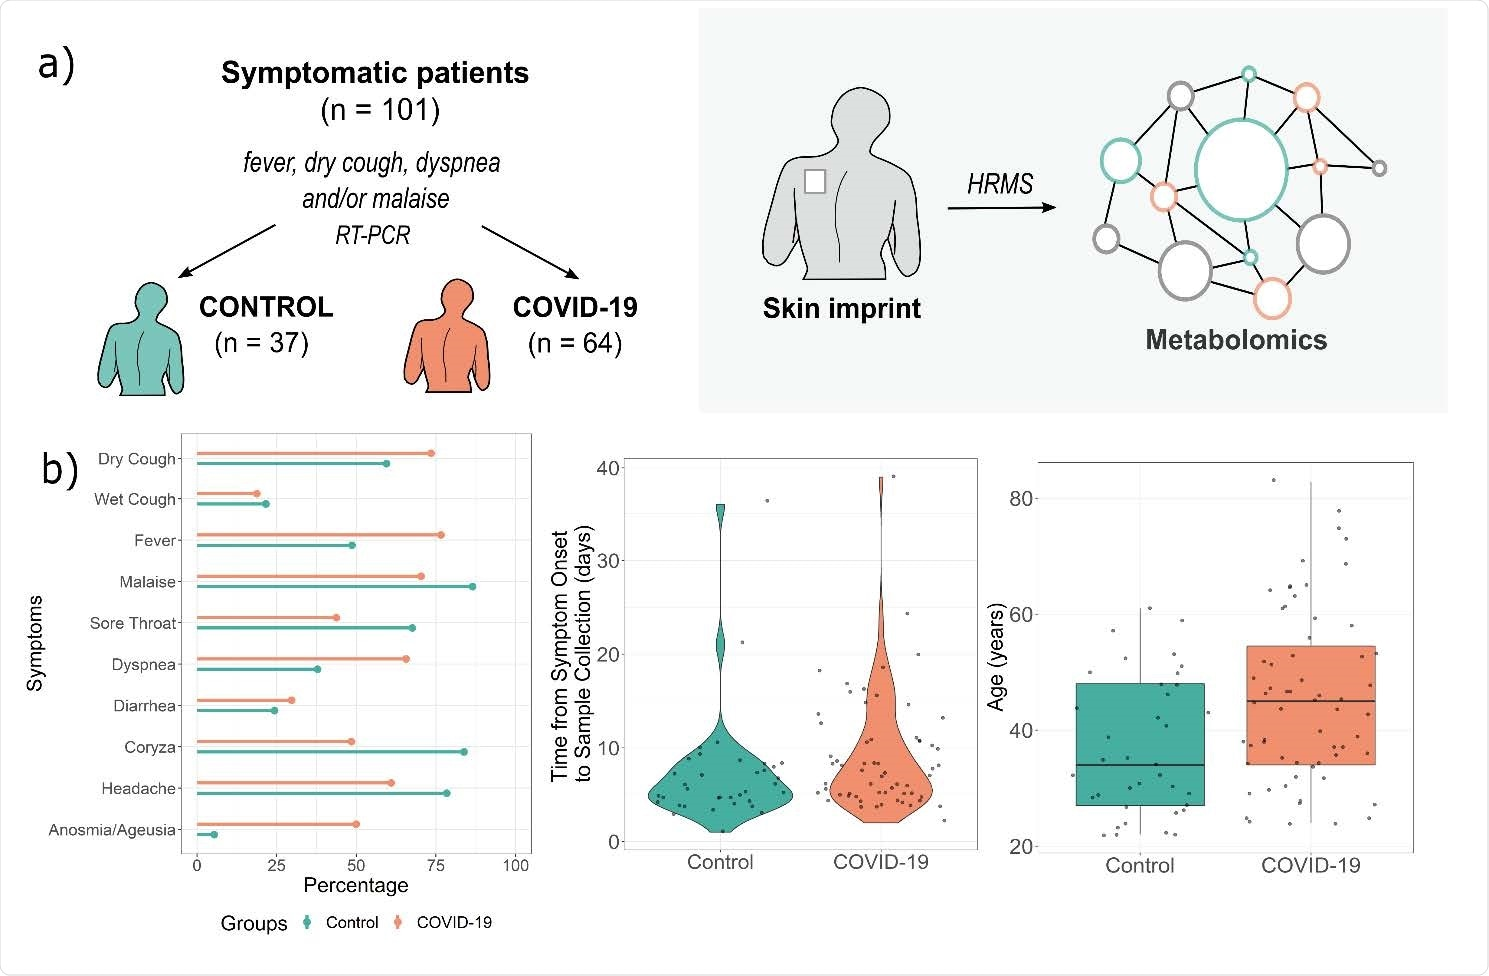 Study design (a) and patient symptoms distributions and age characteristics (b). HRMS – high-resolution mass spectrometry, RT-PCR – reverse transcriptase- polymerase chain reaction.